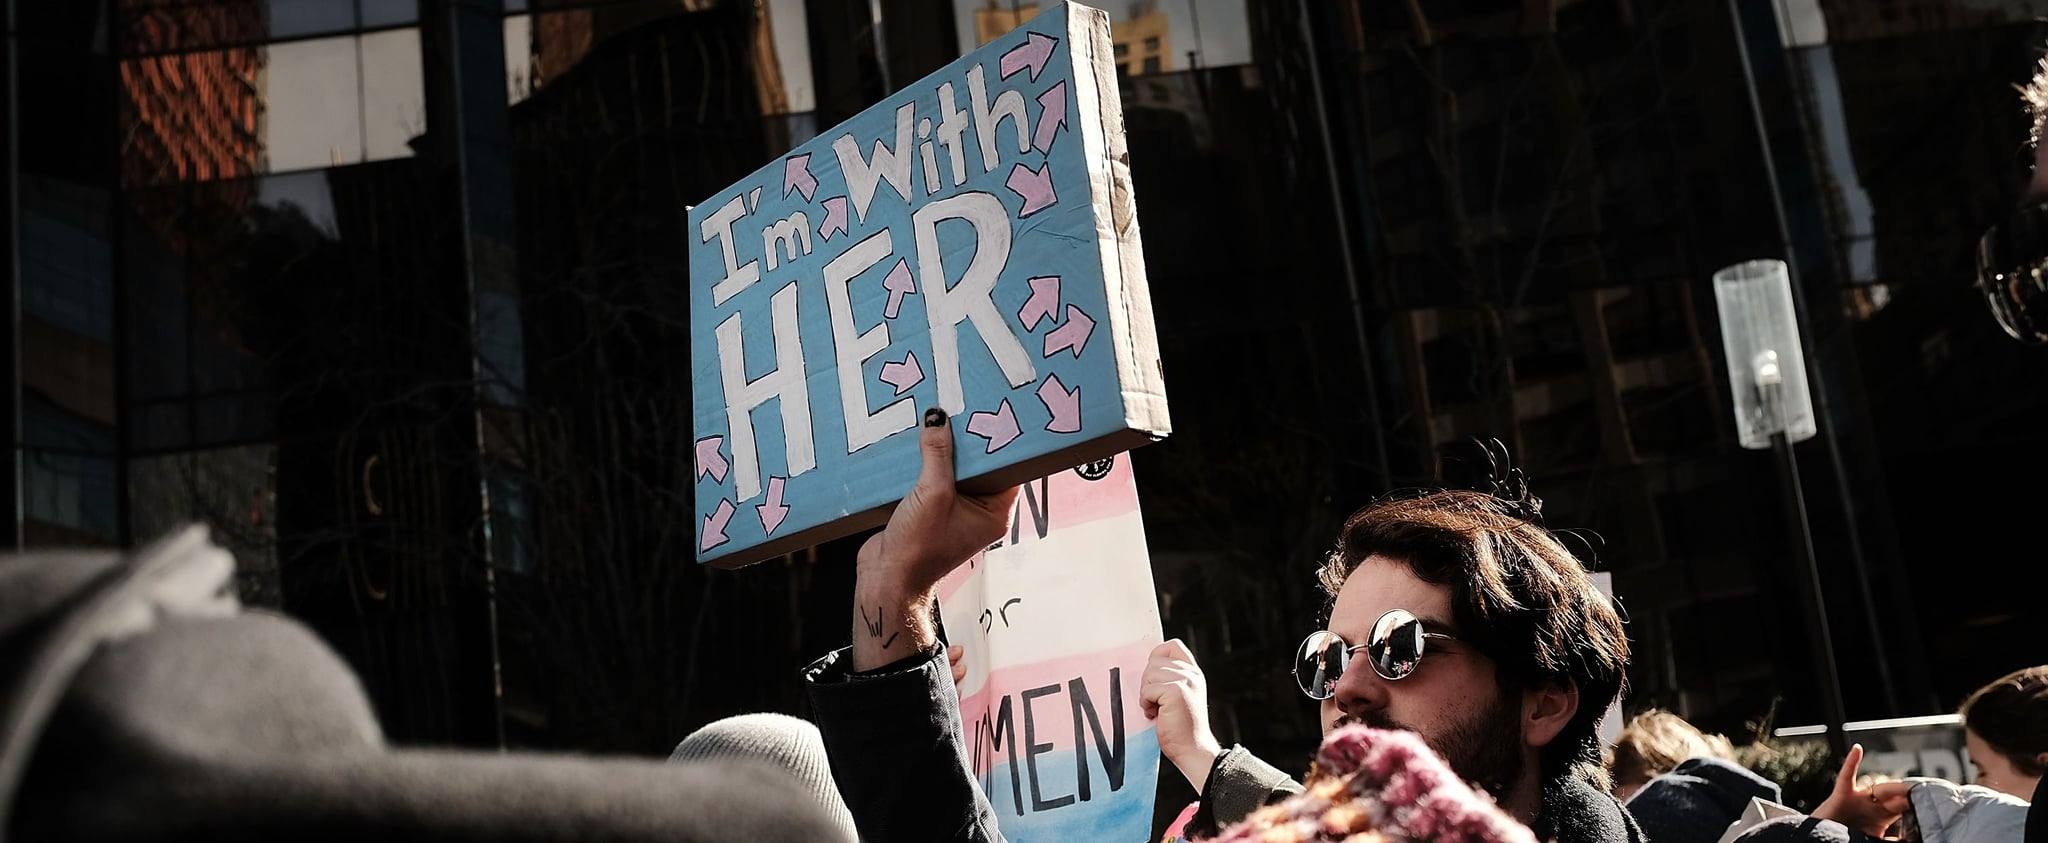 Ways Men Can Support the Women's Movement